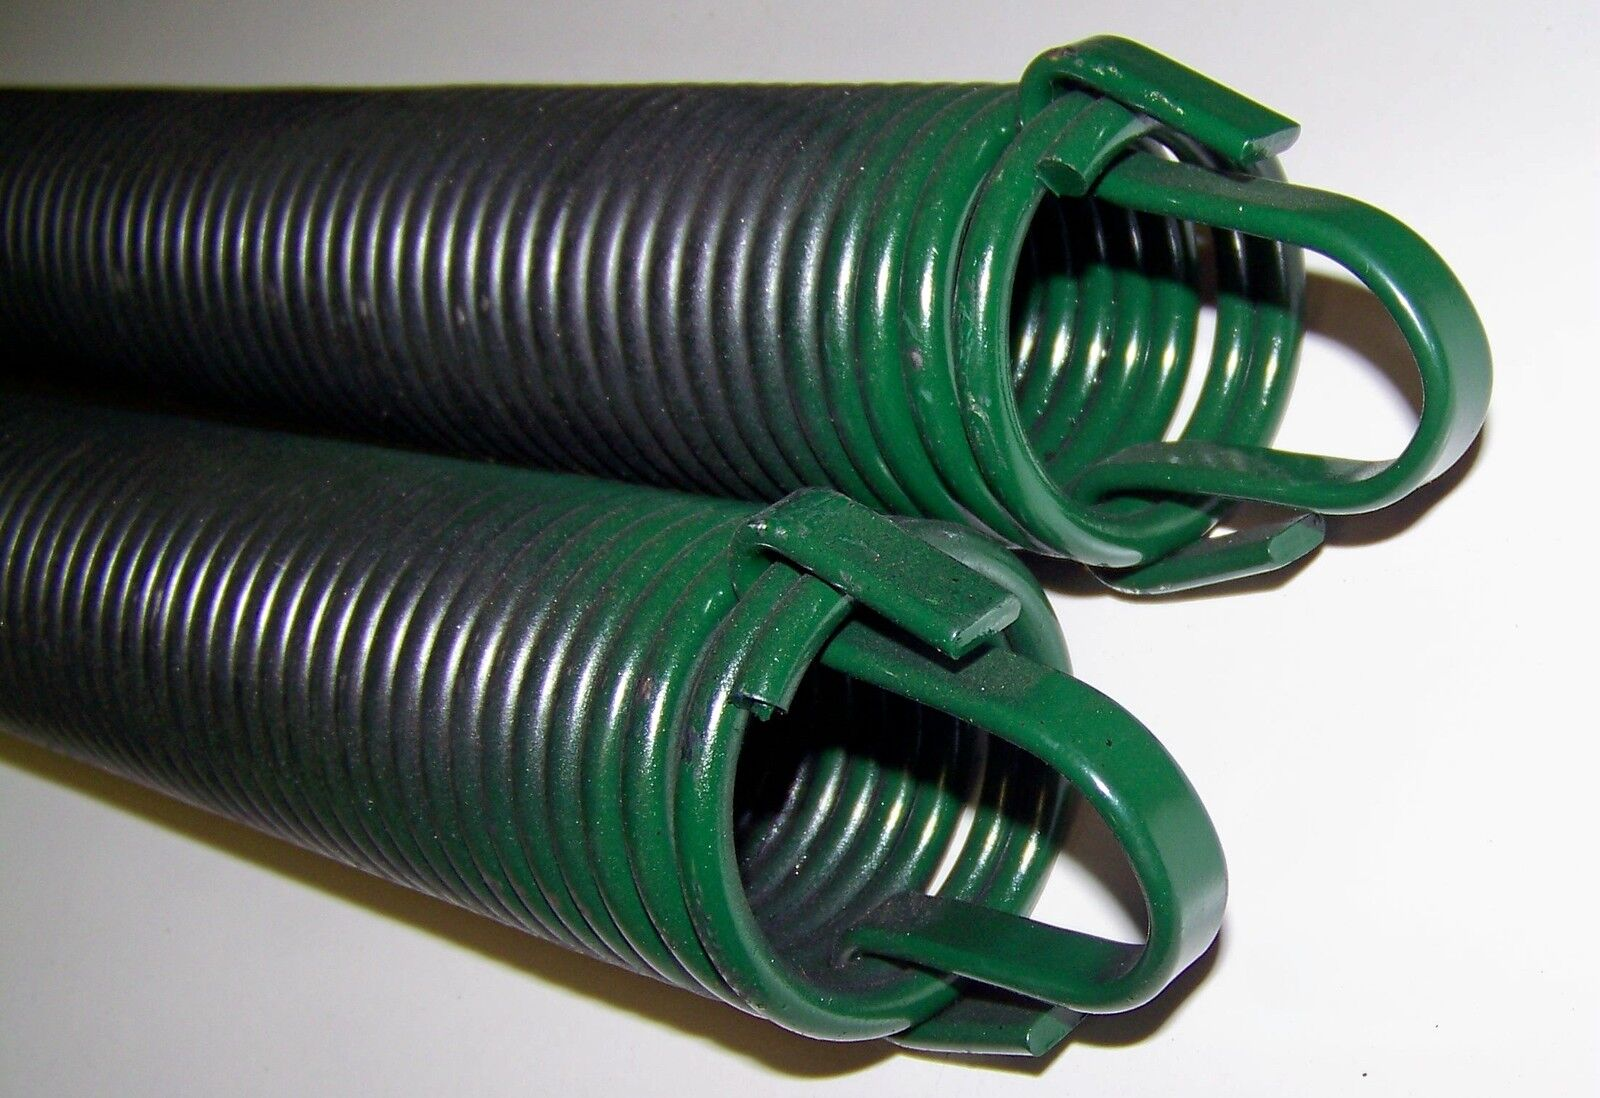 Garage Door Extension Springs - 7' Door - 220 Pound Pull - 1-Pair - NEW